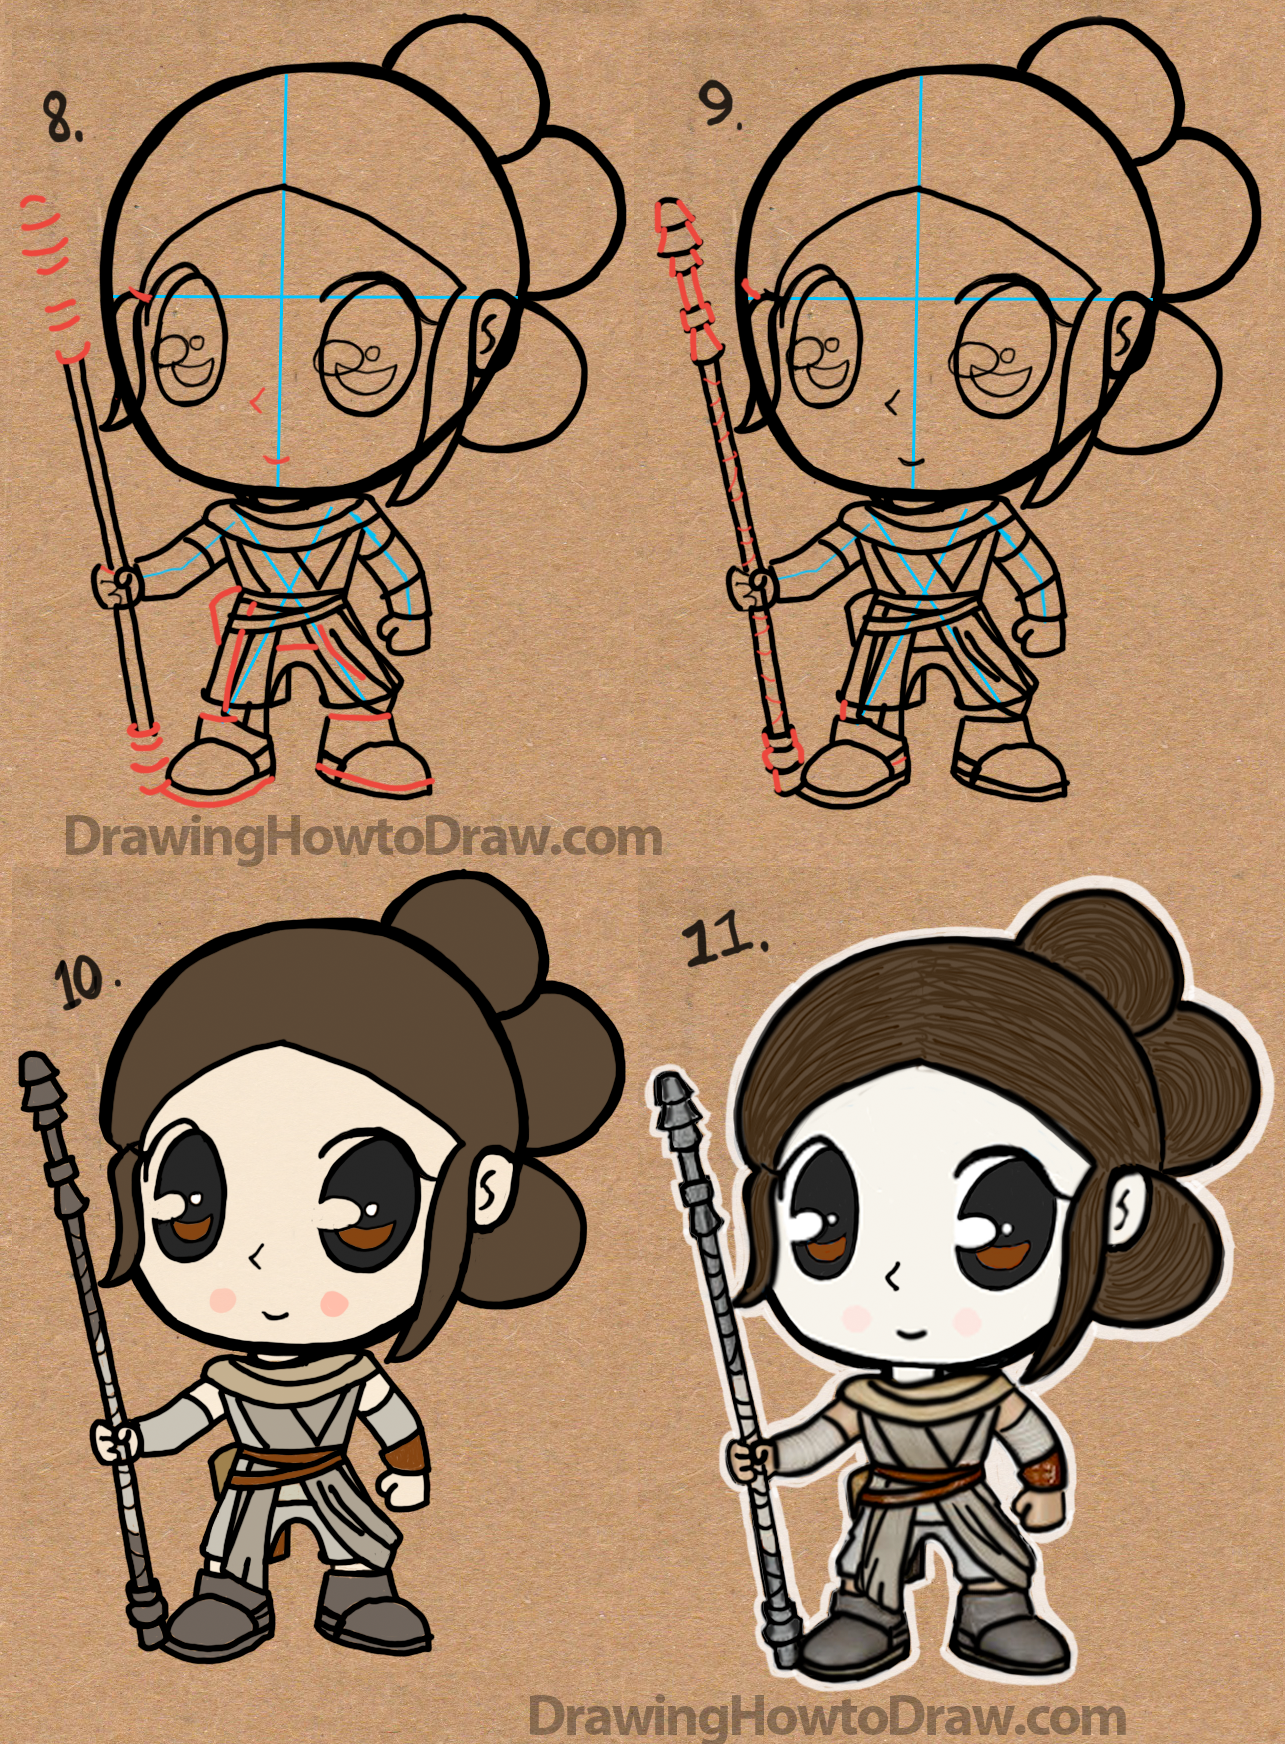 How to Draw Cartoon Chibi Rey from Star Wars The Force Awakens Drawing Tutorial